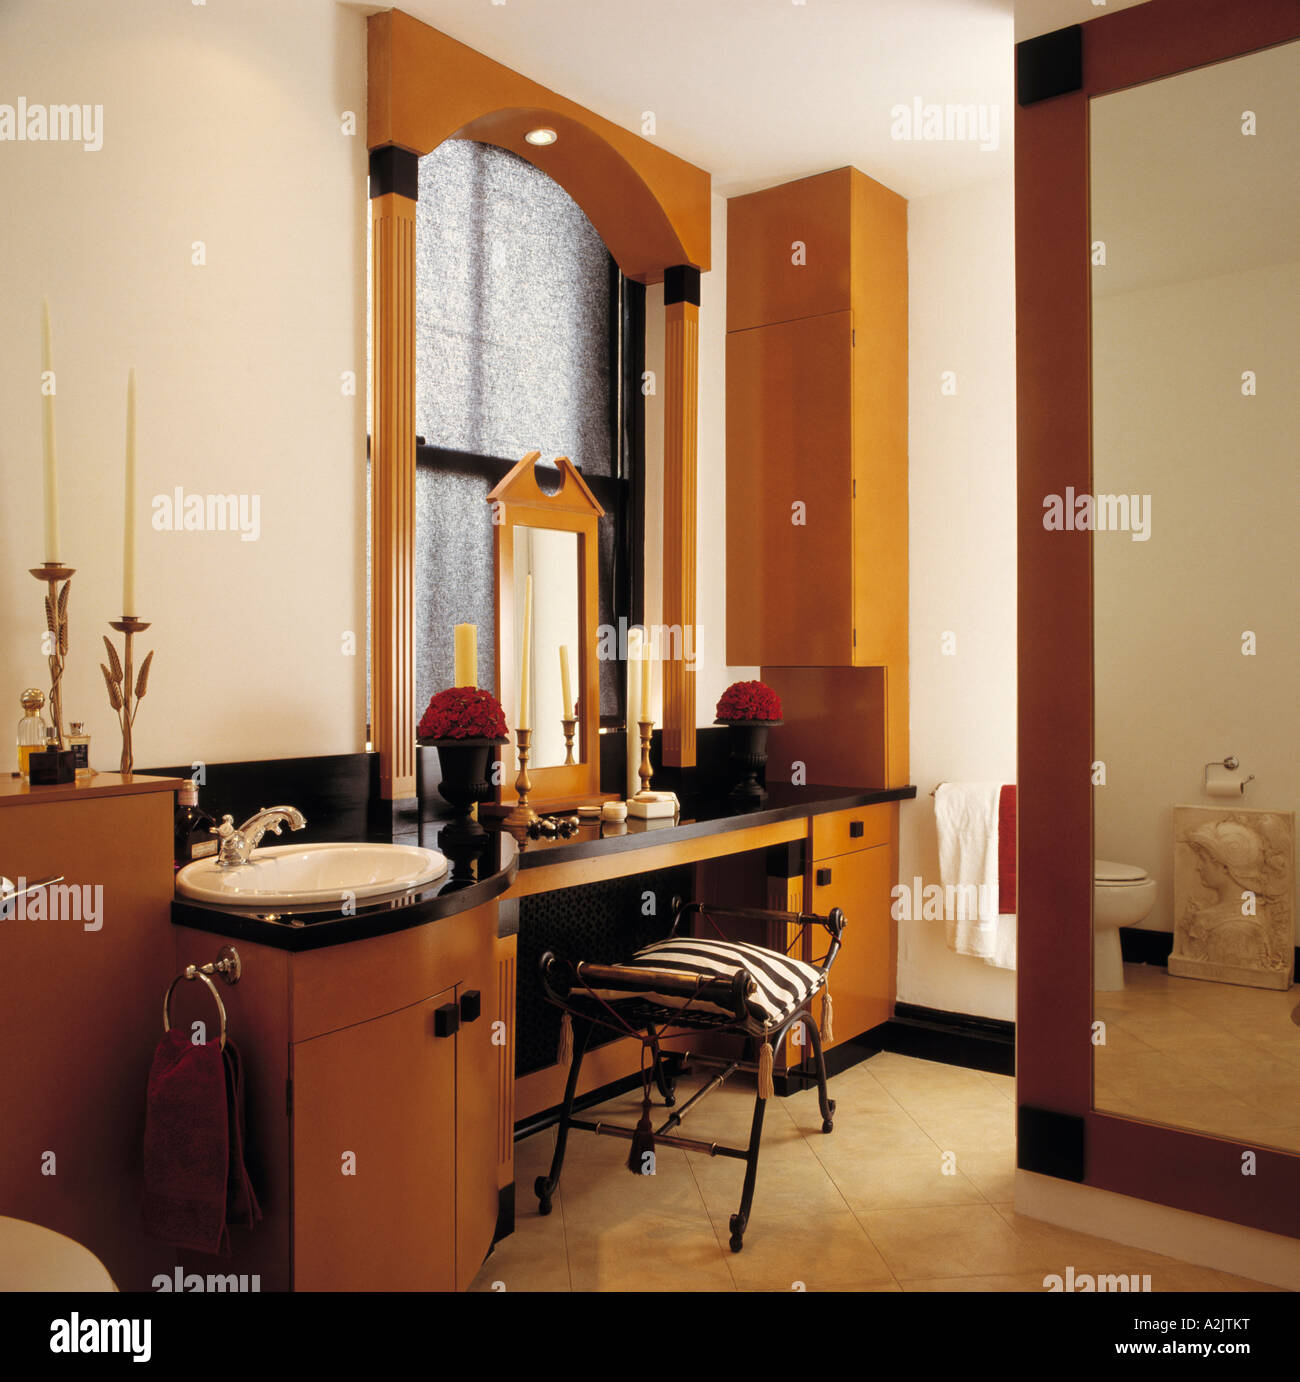 Bathroom with pillared window frame and vanity unit with built in basin - Stock Image